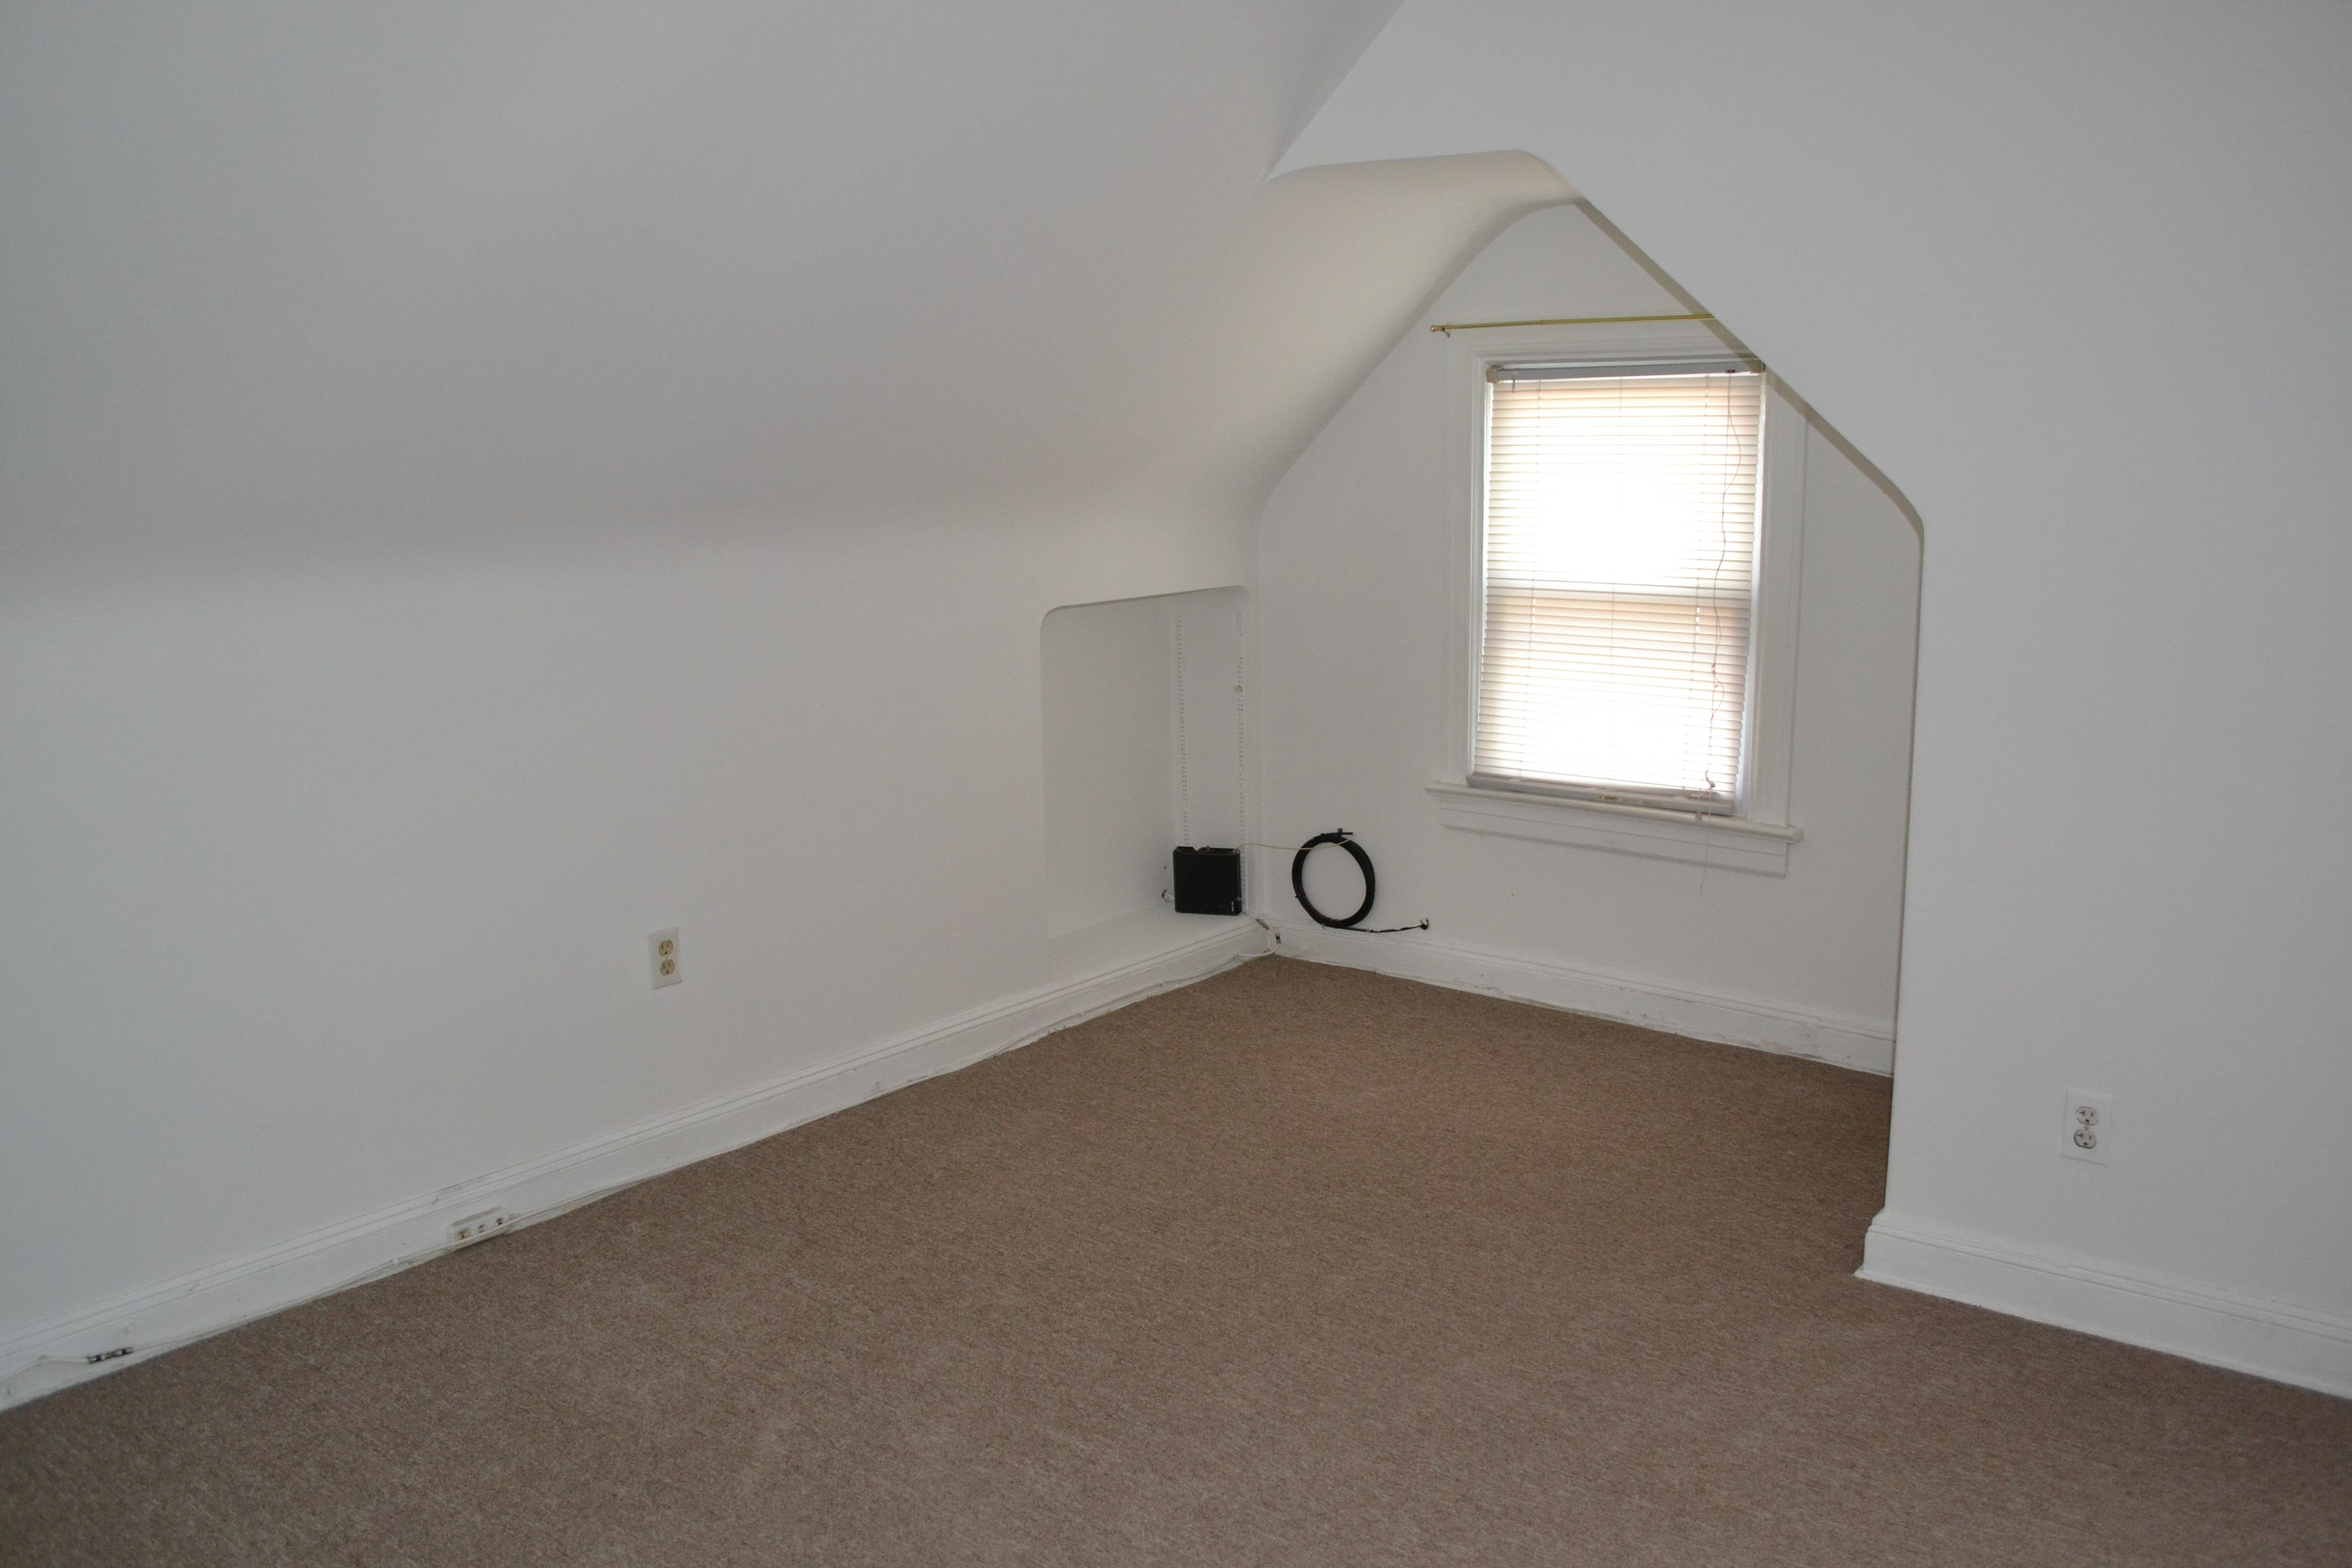 House For Rent In Bayonne Nj Apartments Flats Commercial Space Individual House For